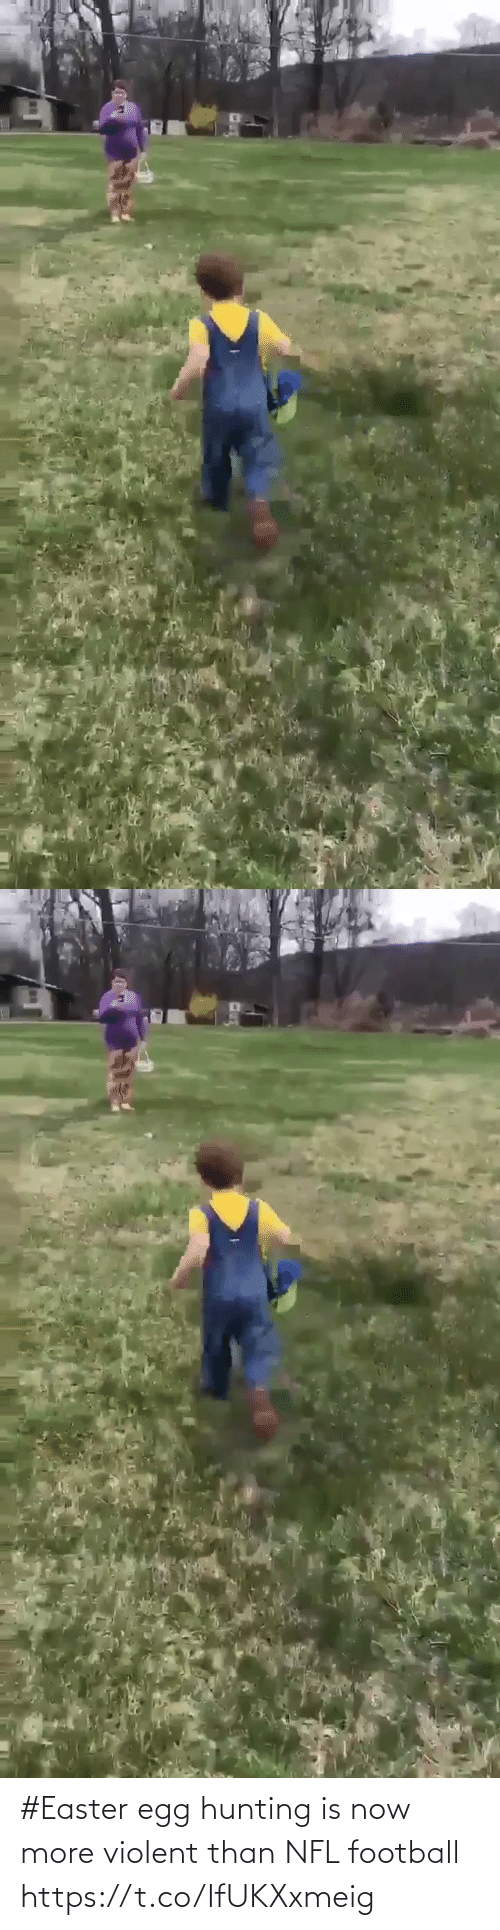 Nfl Football: #Easter egg hunting is now more violent than NFL football https://t.co/IfUKXxmeig